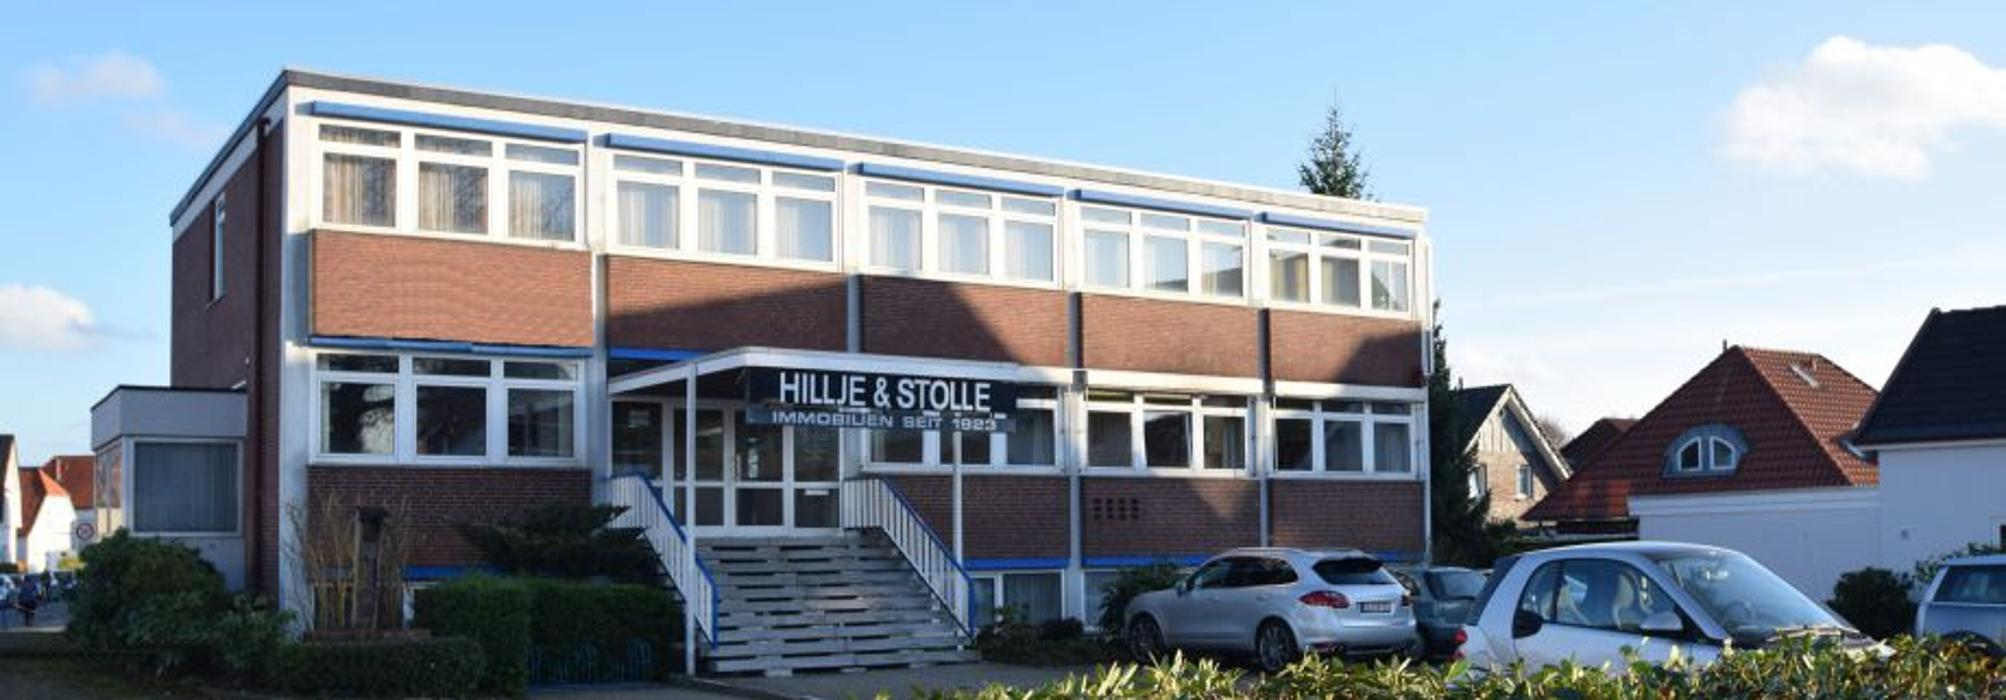 Bild zu Hillje & Stolle Immobilien seit 1923 in Oldenburg in Oldenburg